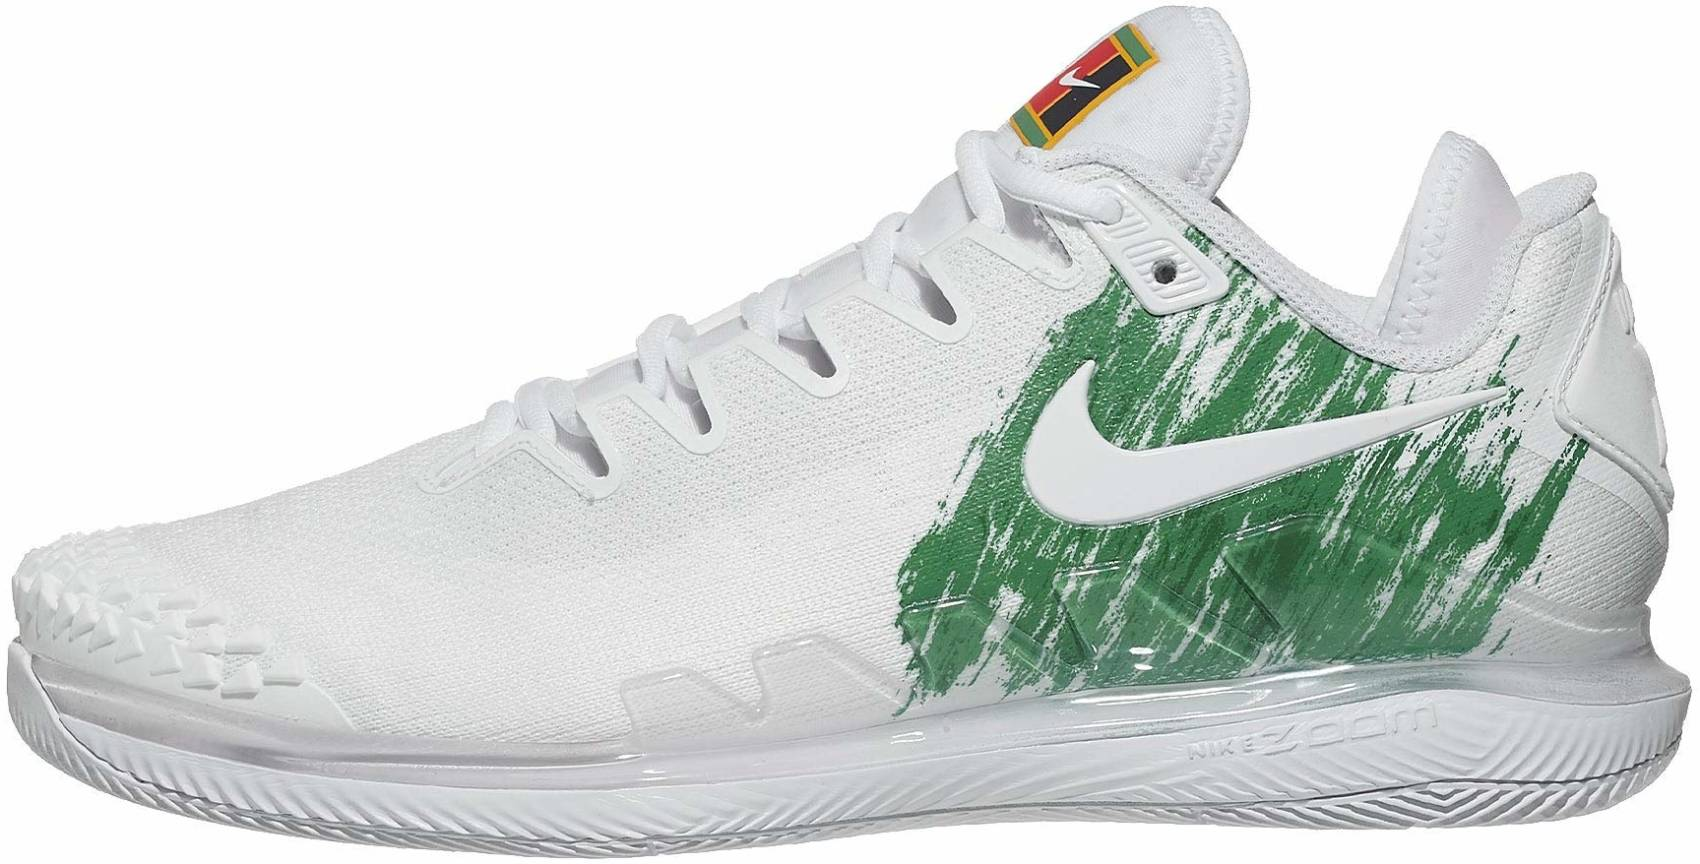 8 Reasons to/NOT to Buy NikeCourt Air Zoom Vapor X Knit (Sep 2021 ...